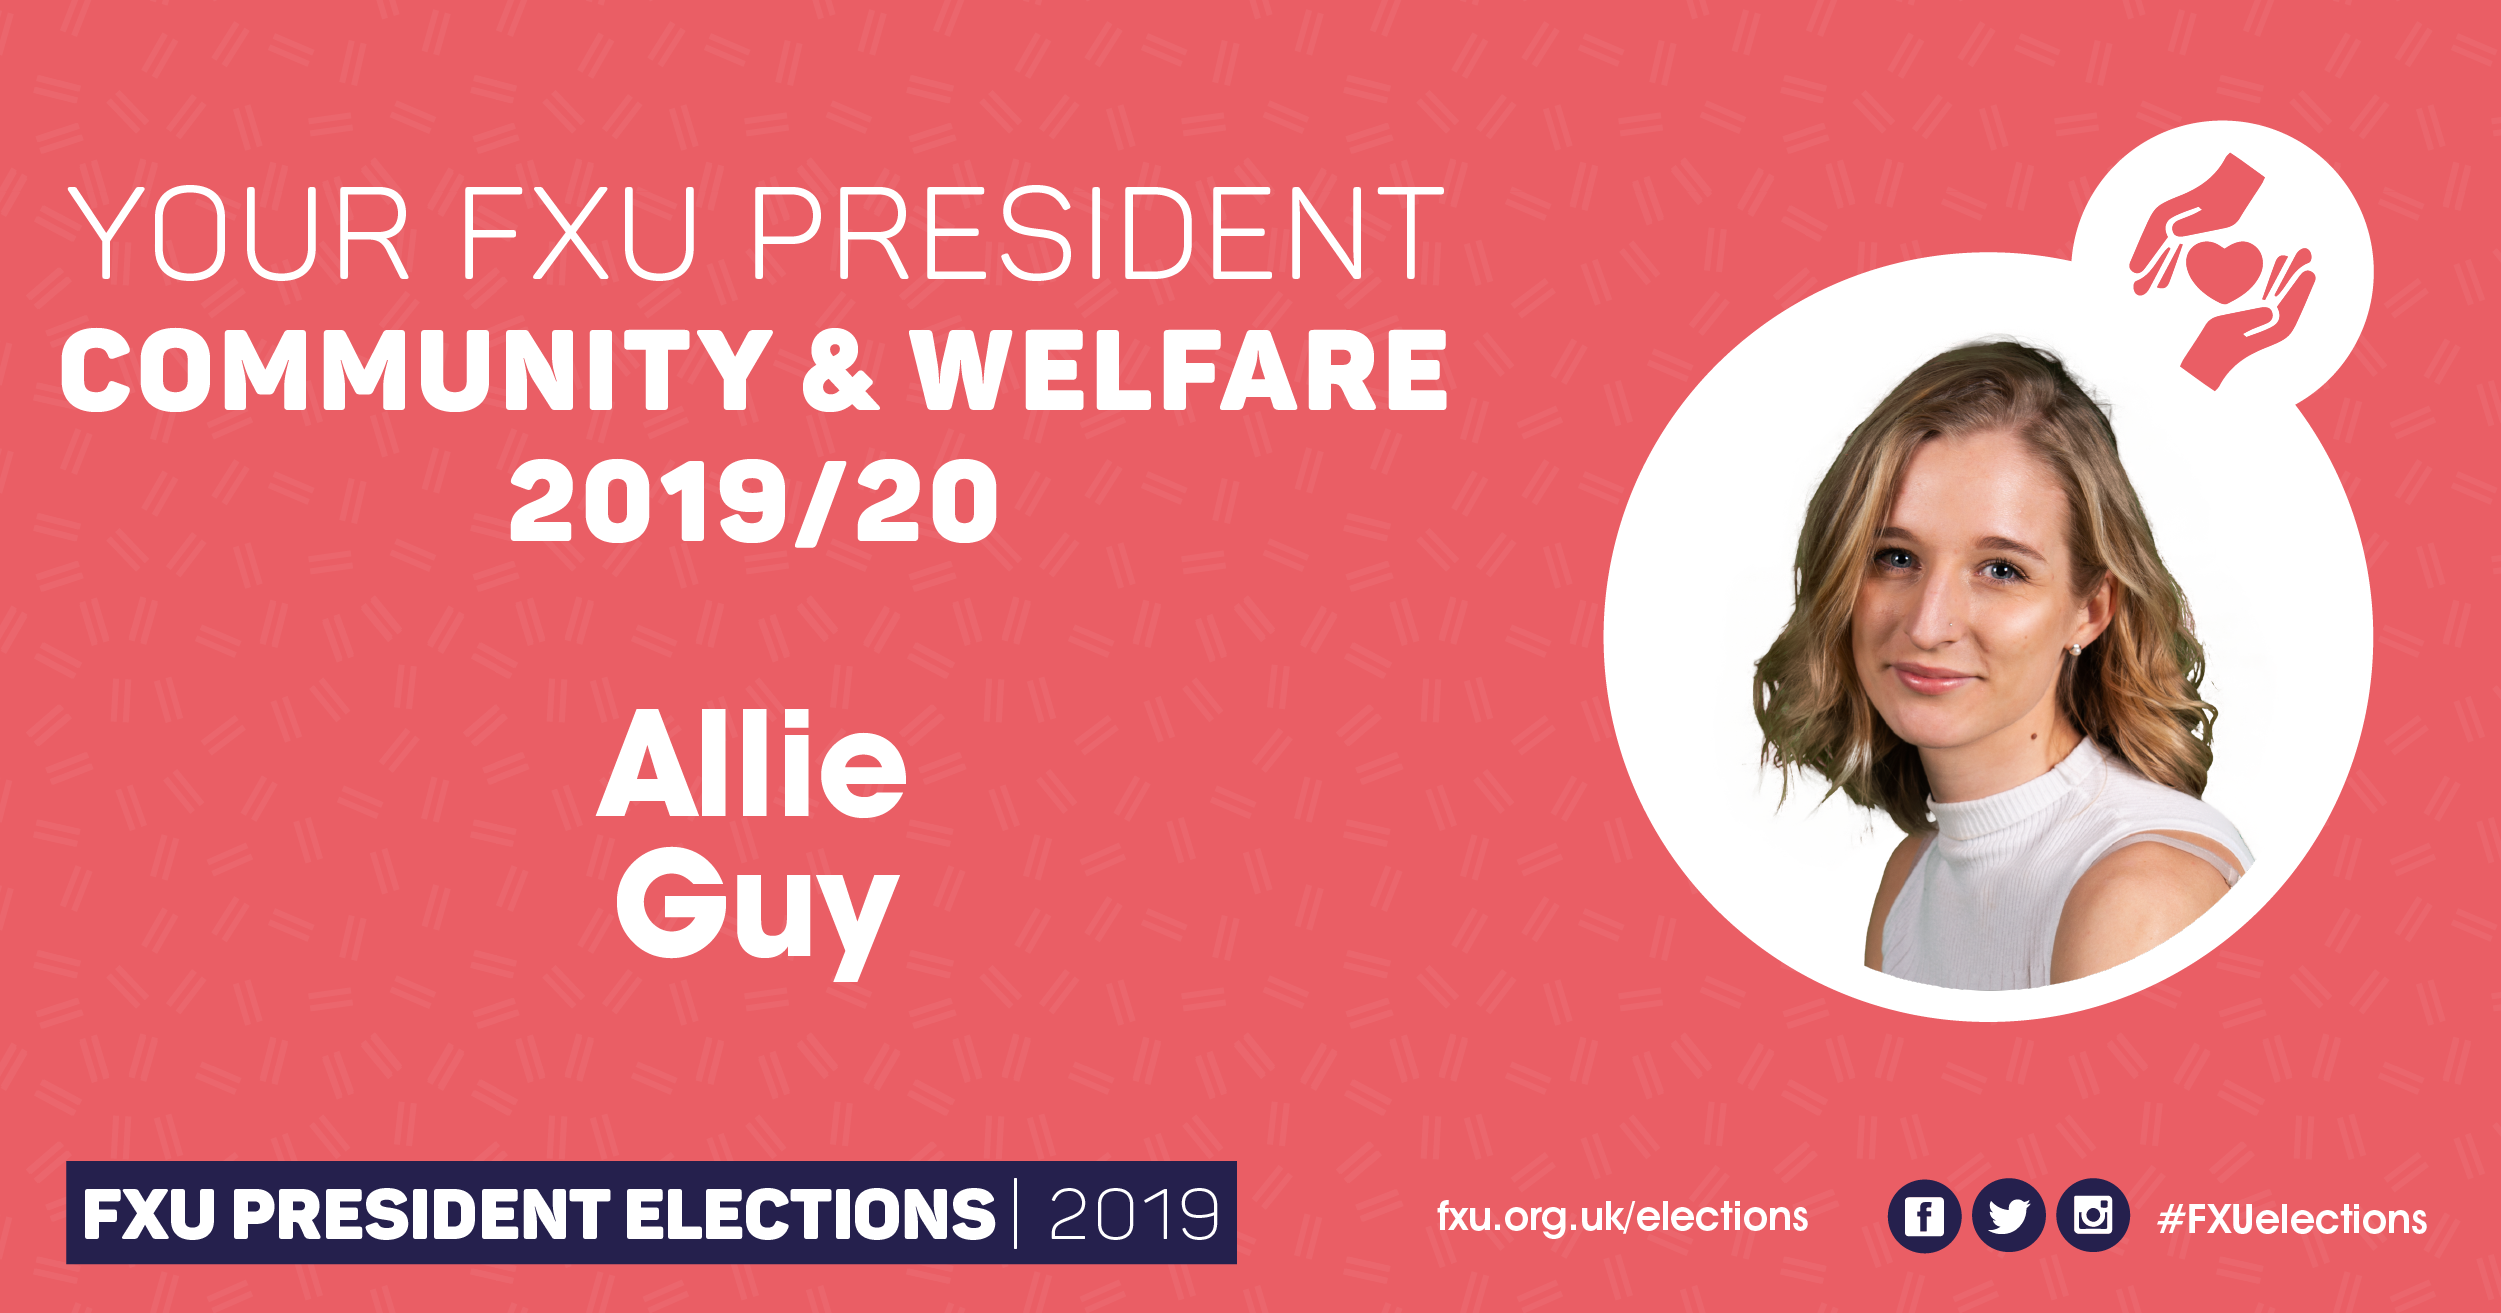 FXU President Elections